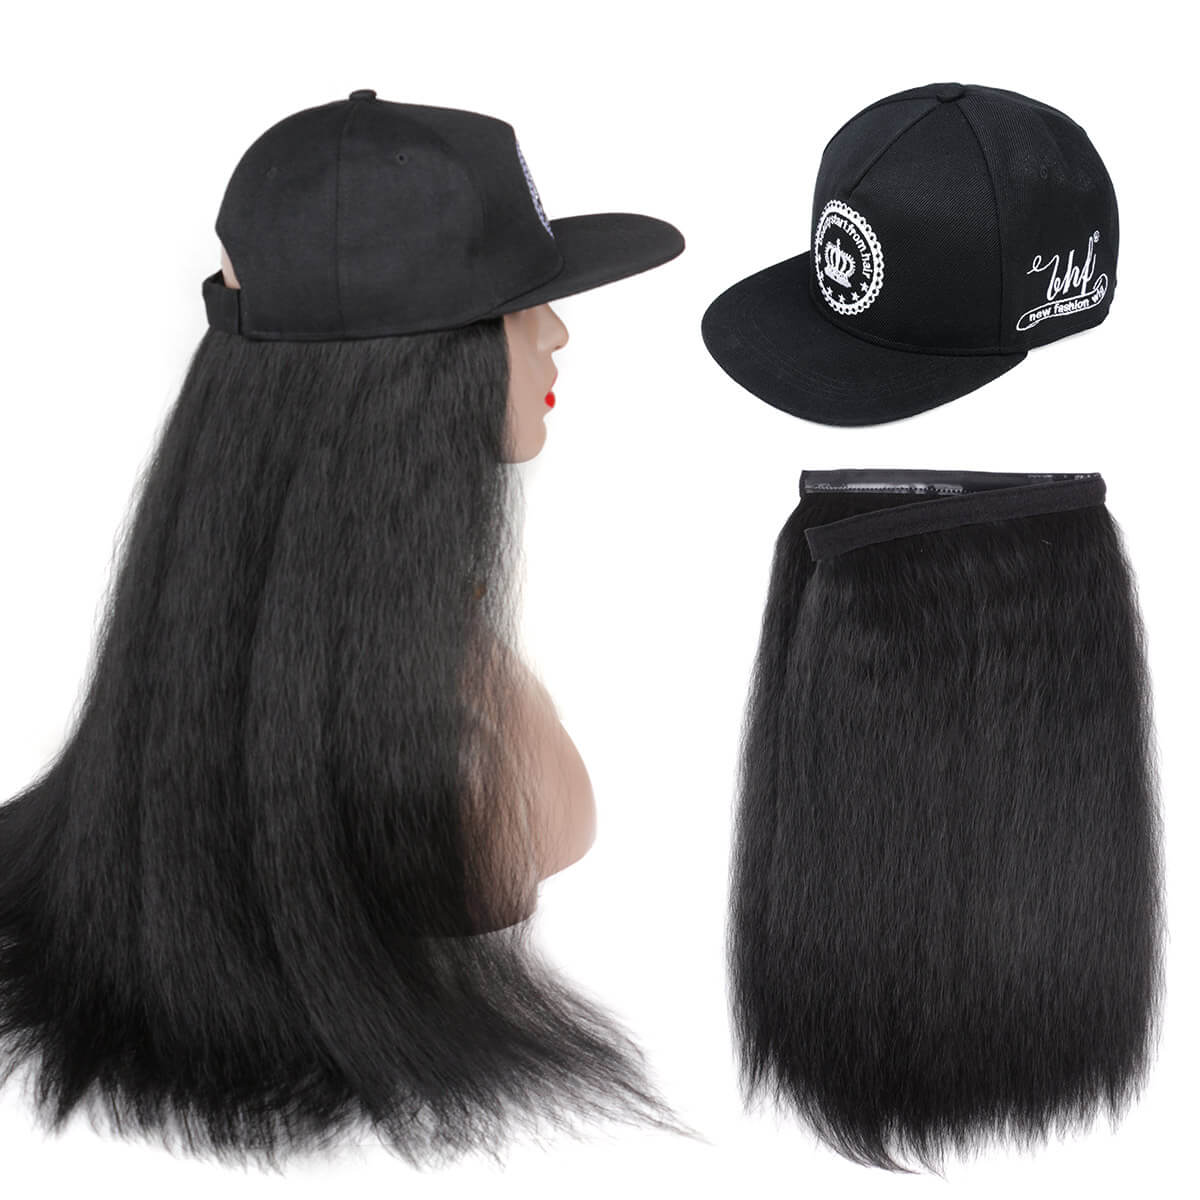 Long Yaki Straight Synthetic Baseball Hair Wig Natural Black Wigs Naturally Connect Hat Wig Adjustable For Girl Fashion Icon